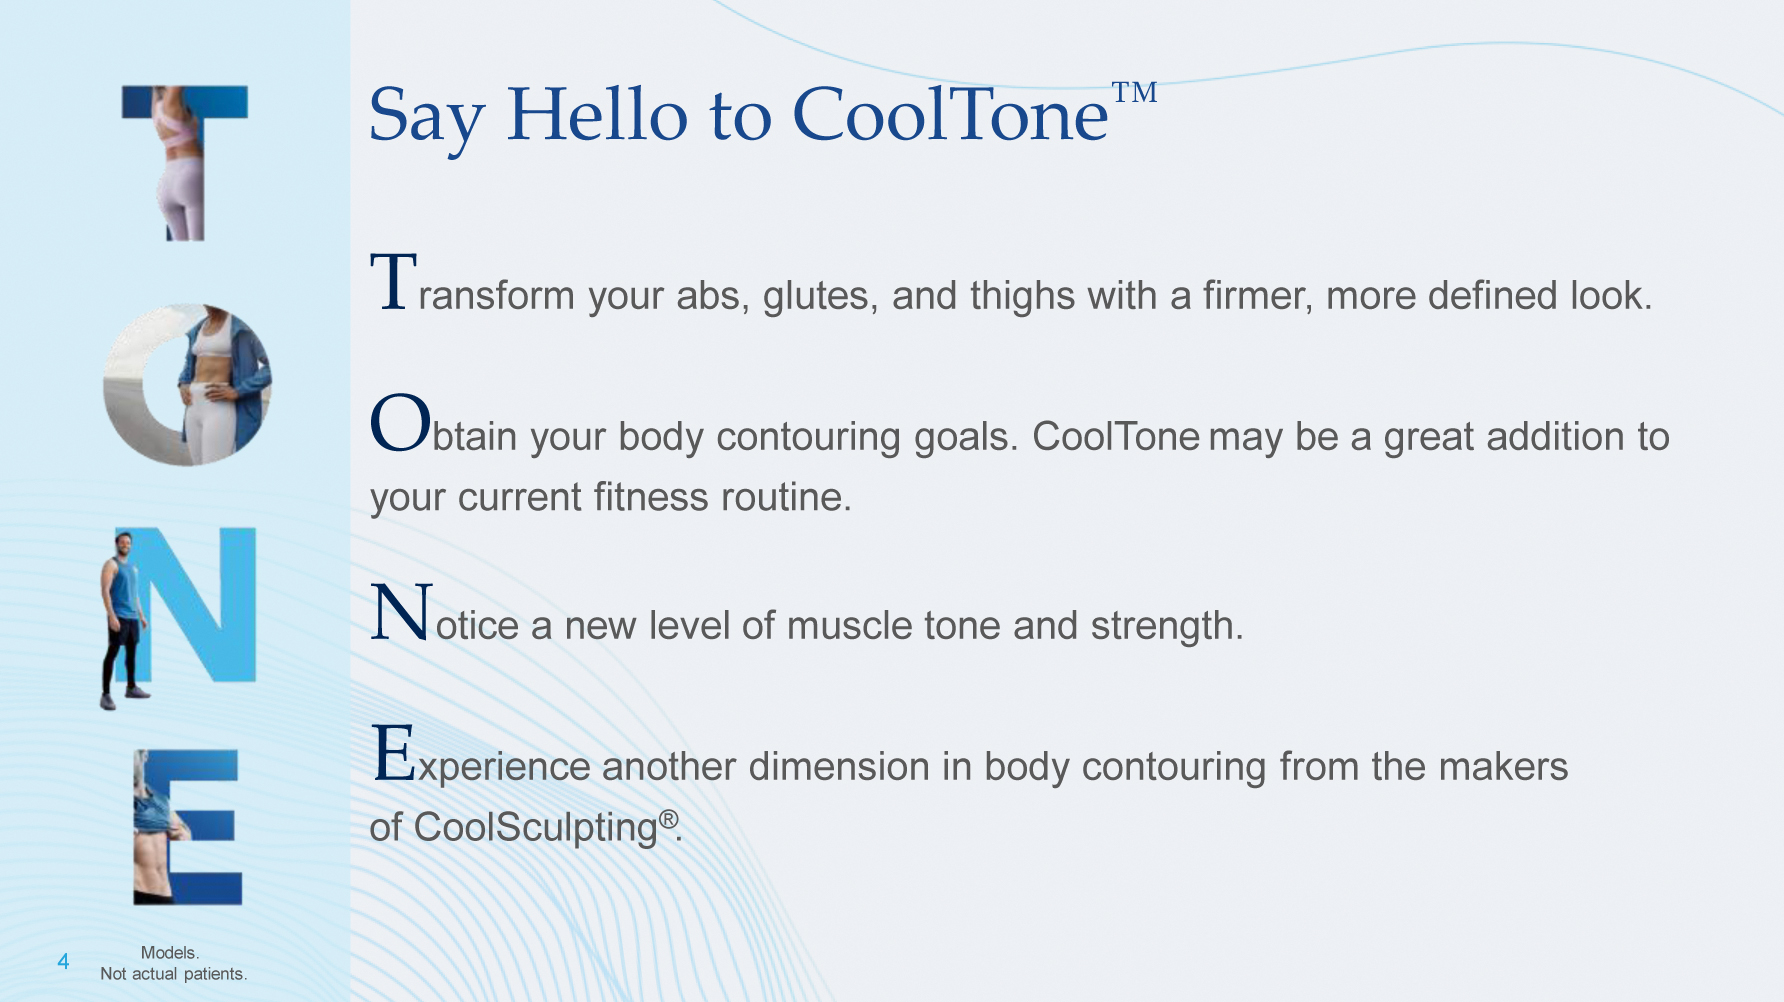 Say Hello to CoolTone